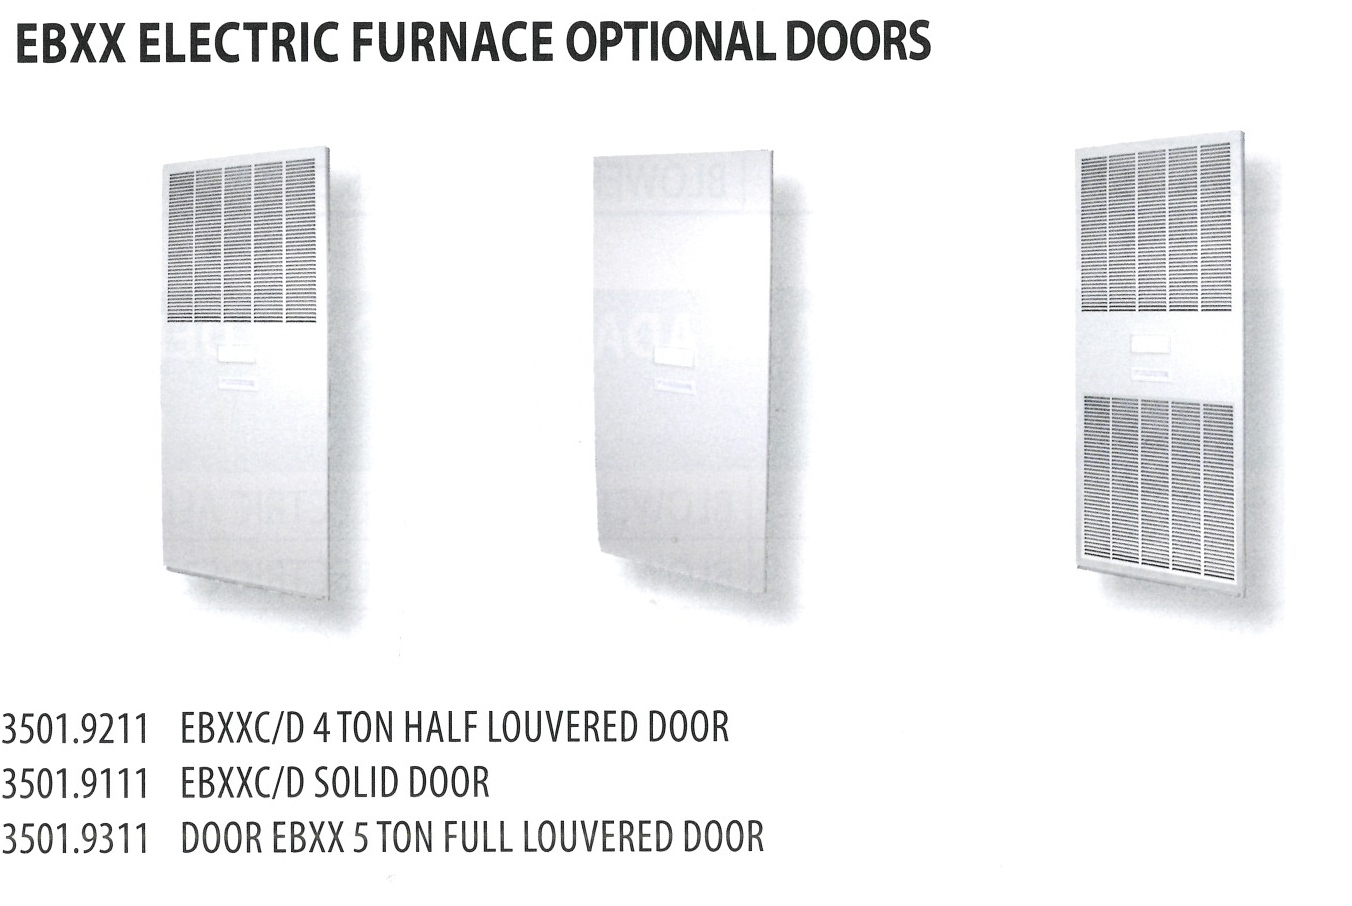 3501.9211-3501.9311 EBXX ELECTRIC FURNACE OPTIONAL DOORS